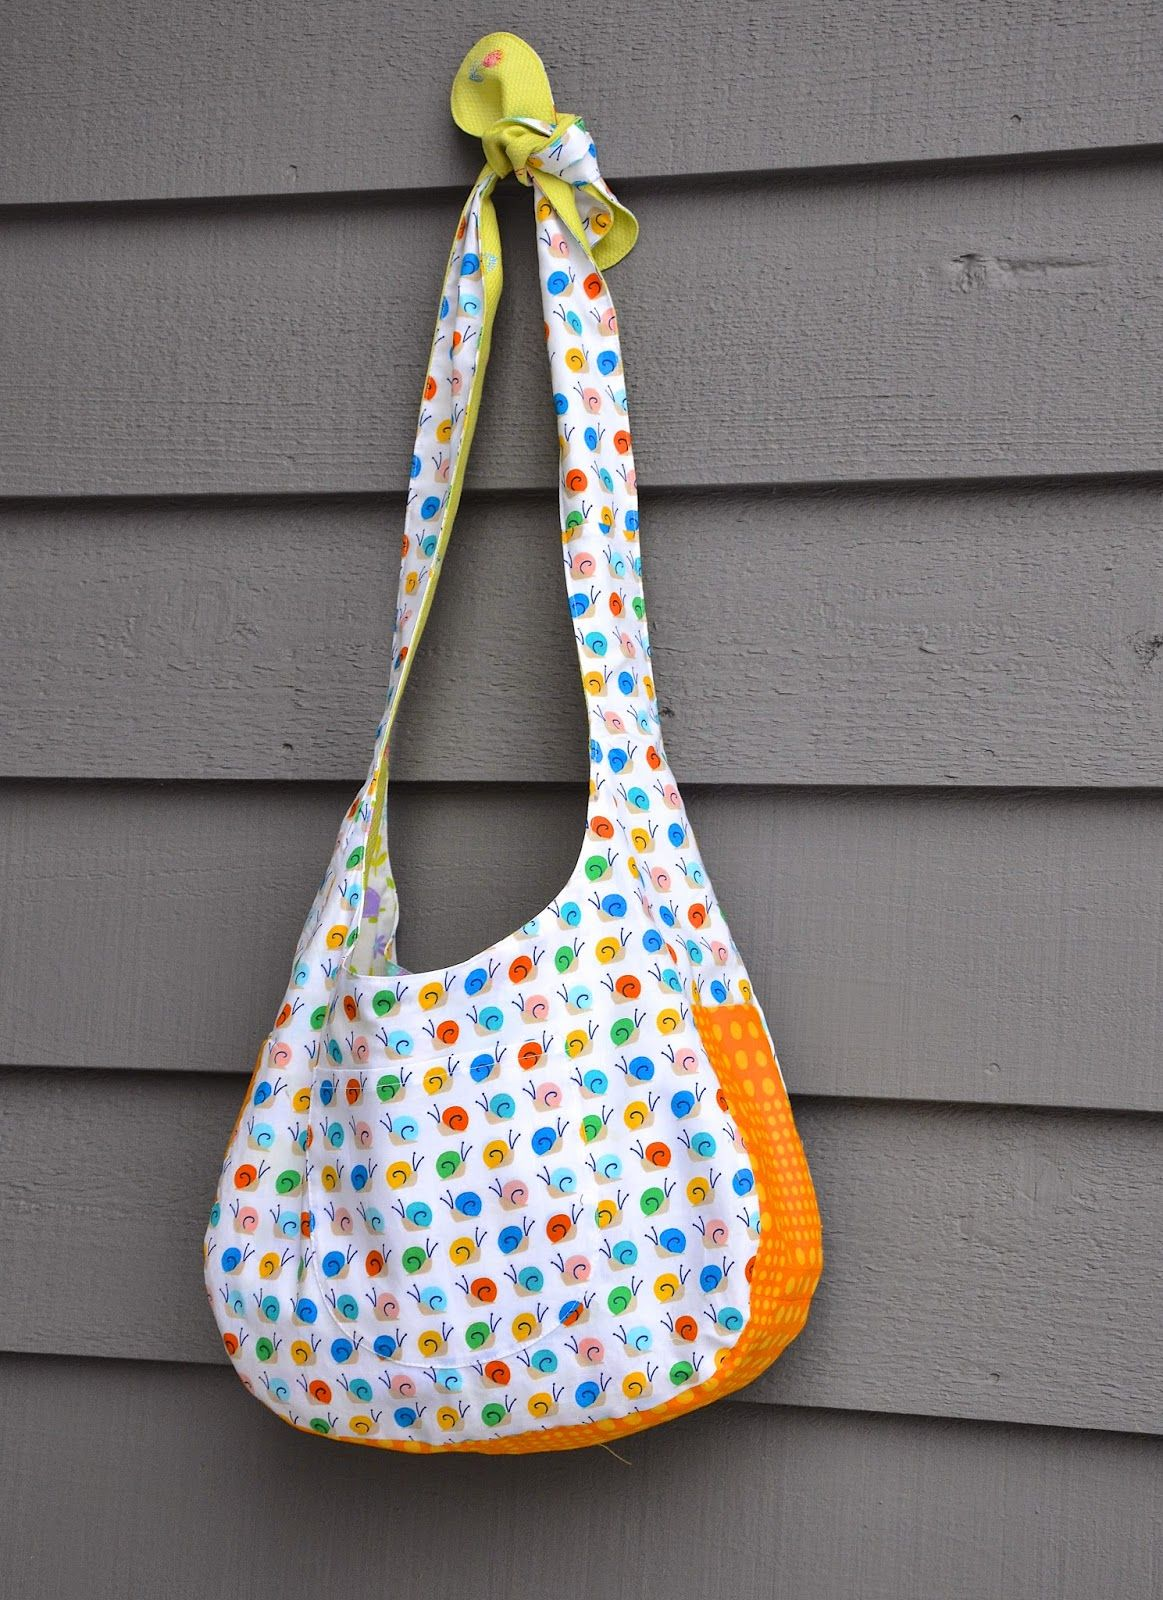 Emily S Slouch Bag Free Pattern From Ikatbag My Favorite Blog